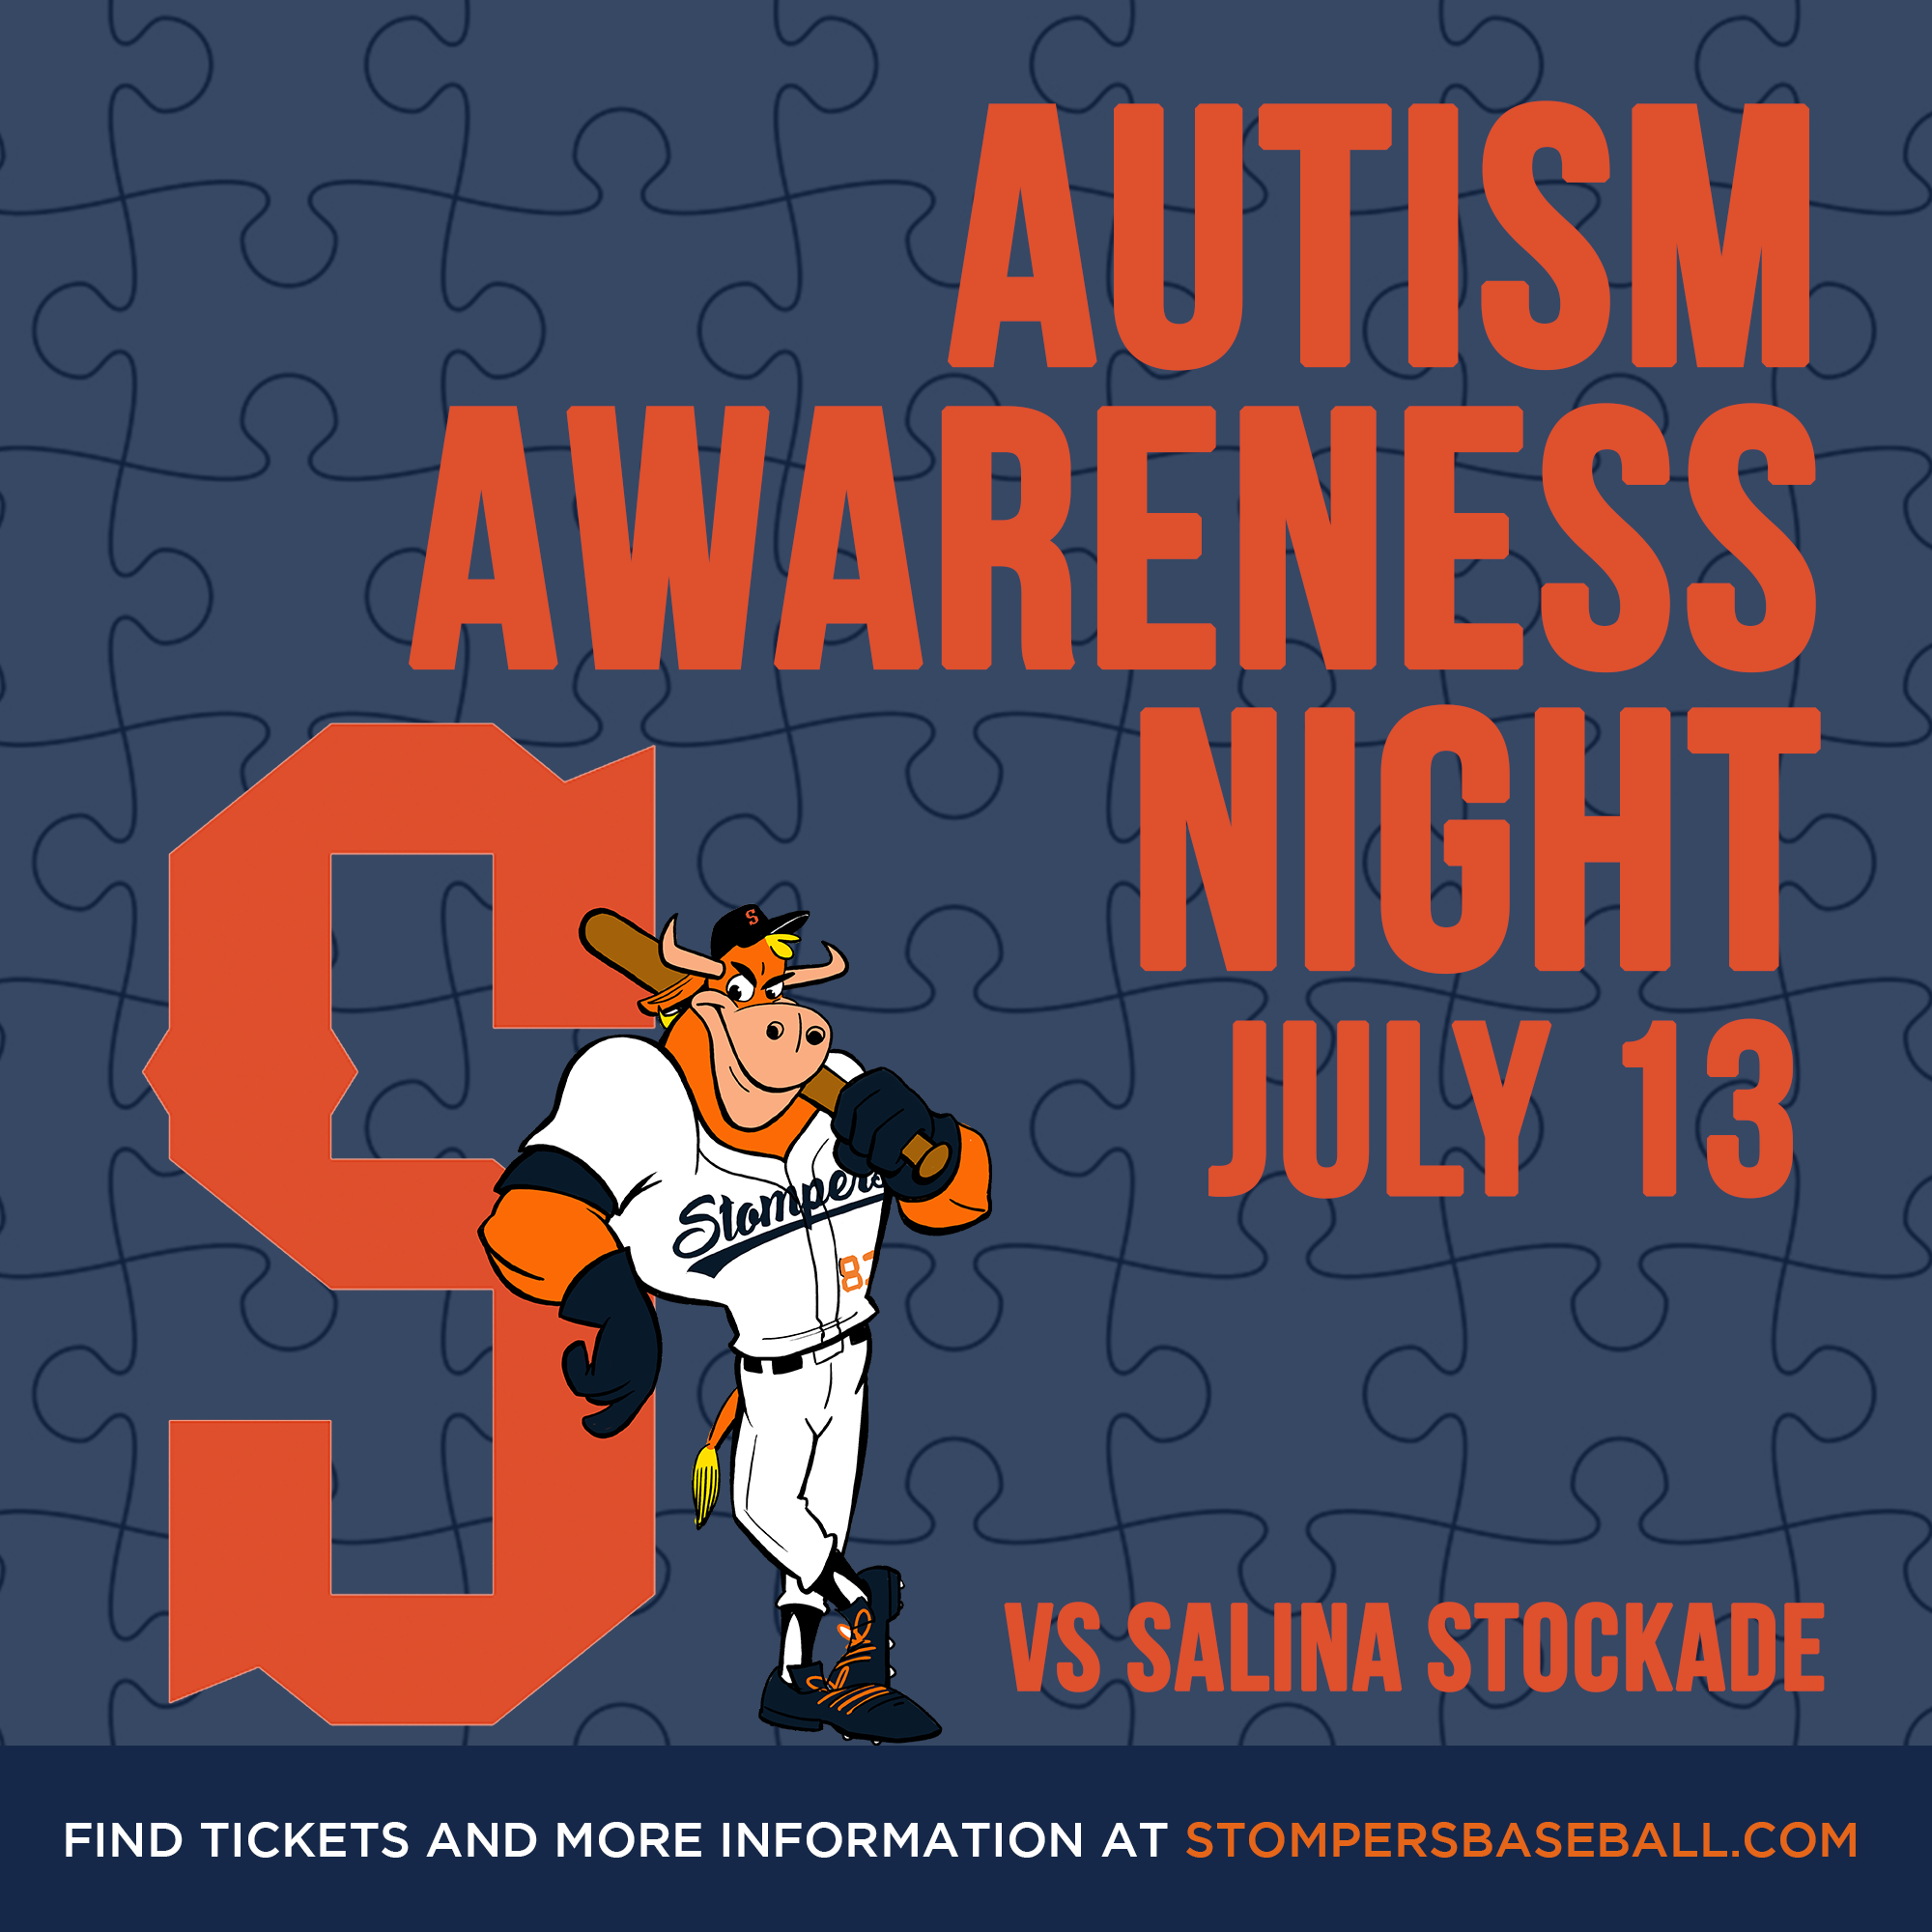 July 13: Autism Awareness Night - Come out for Autism Awareness Night presented by Sweetwater Spectrum!